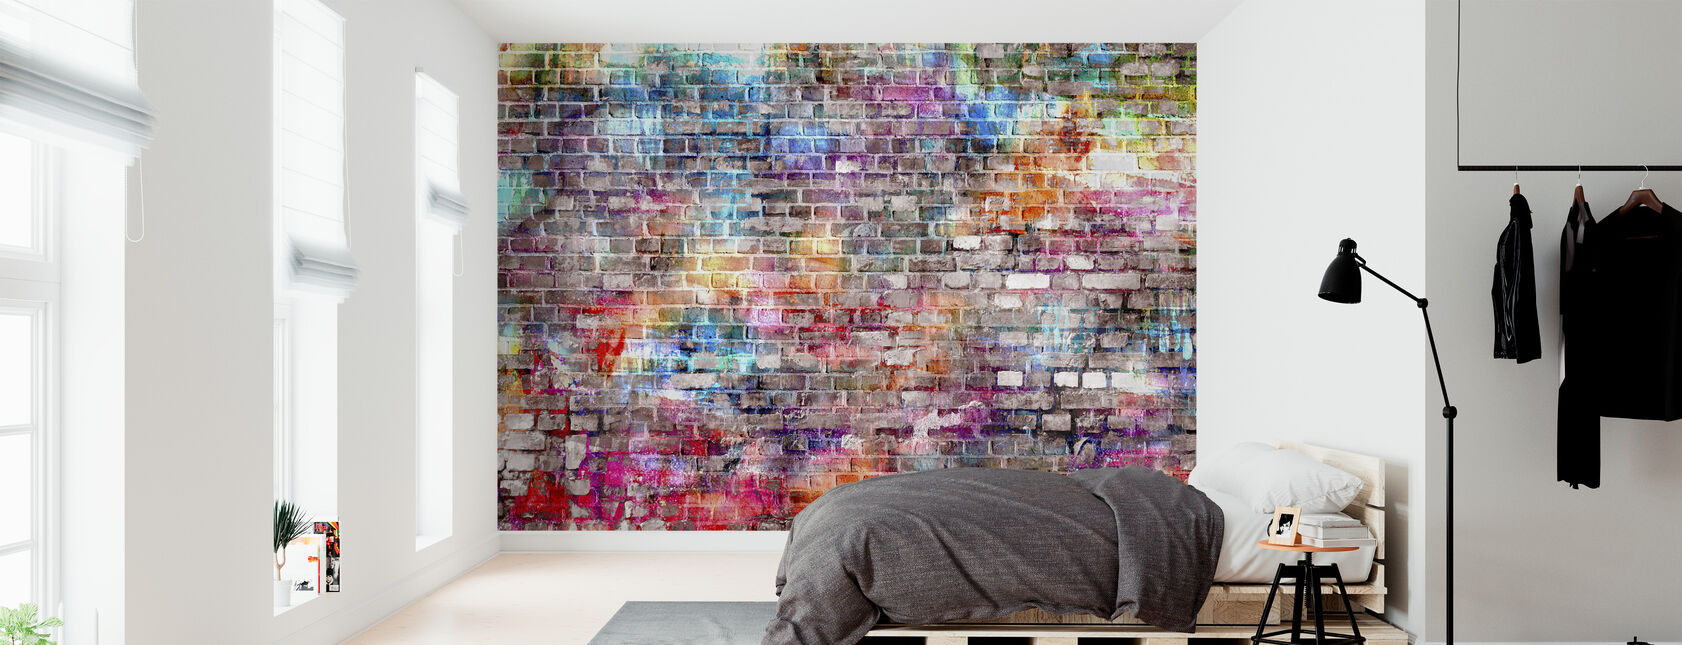 Urban Art Bricks - Wallpaper - Bedroom